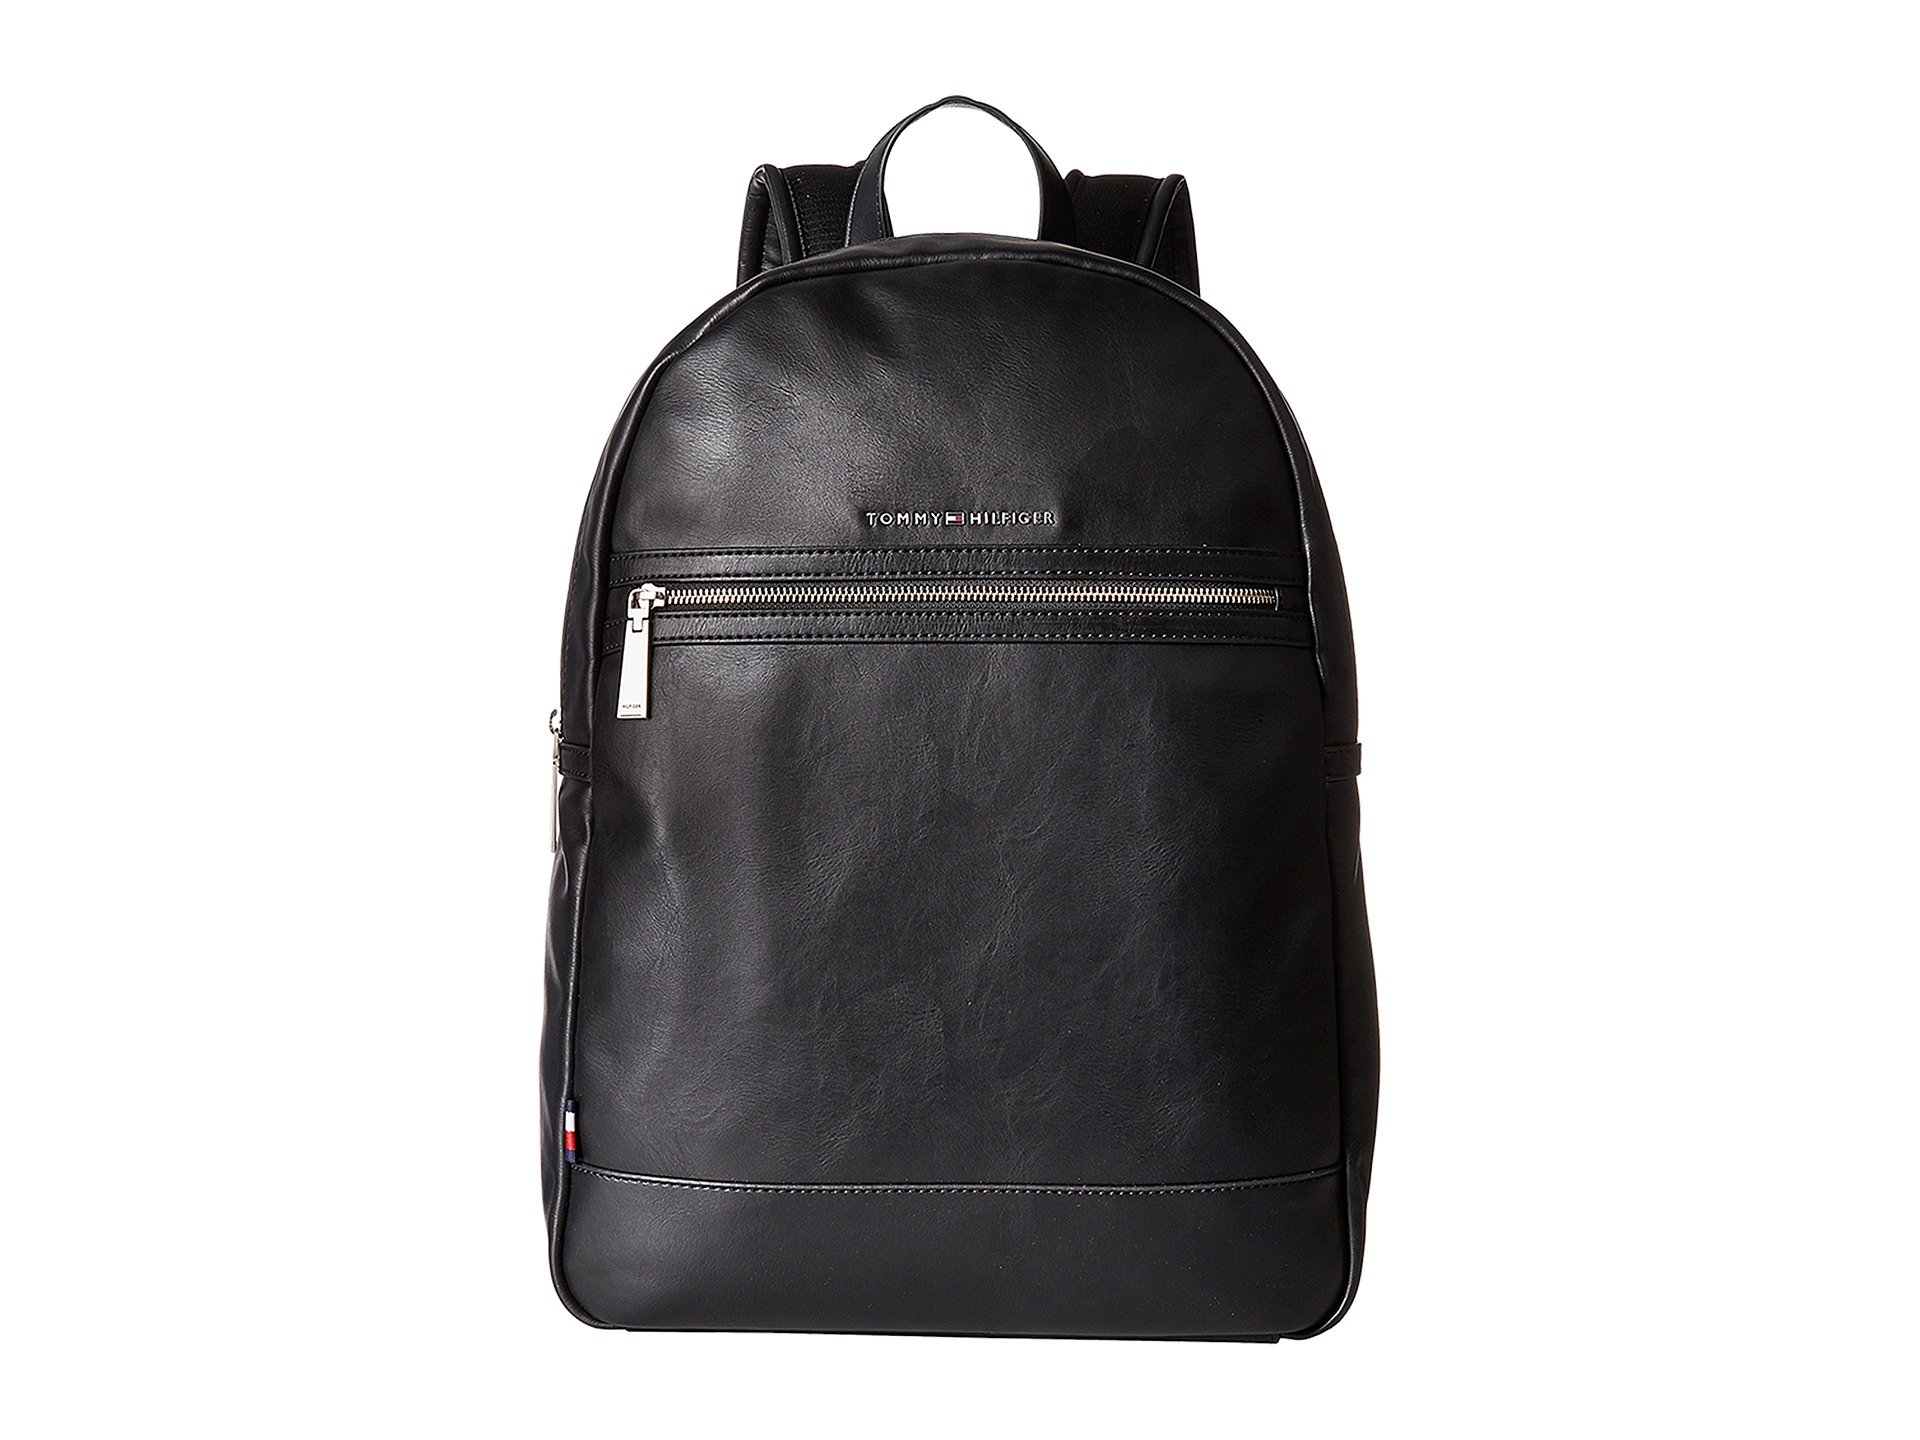 Mochila para Mujer Tommy Hilfiger TH City Backpack  + Tommy Hilfiger en VeoyCompro.net